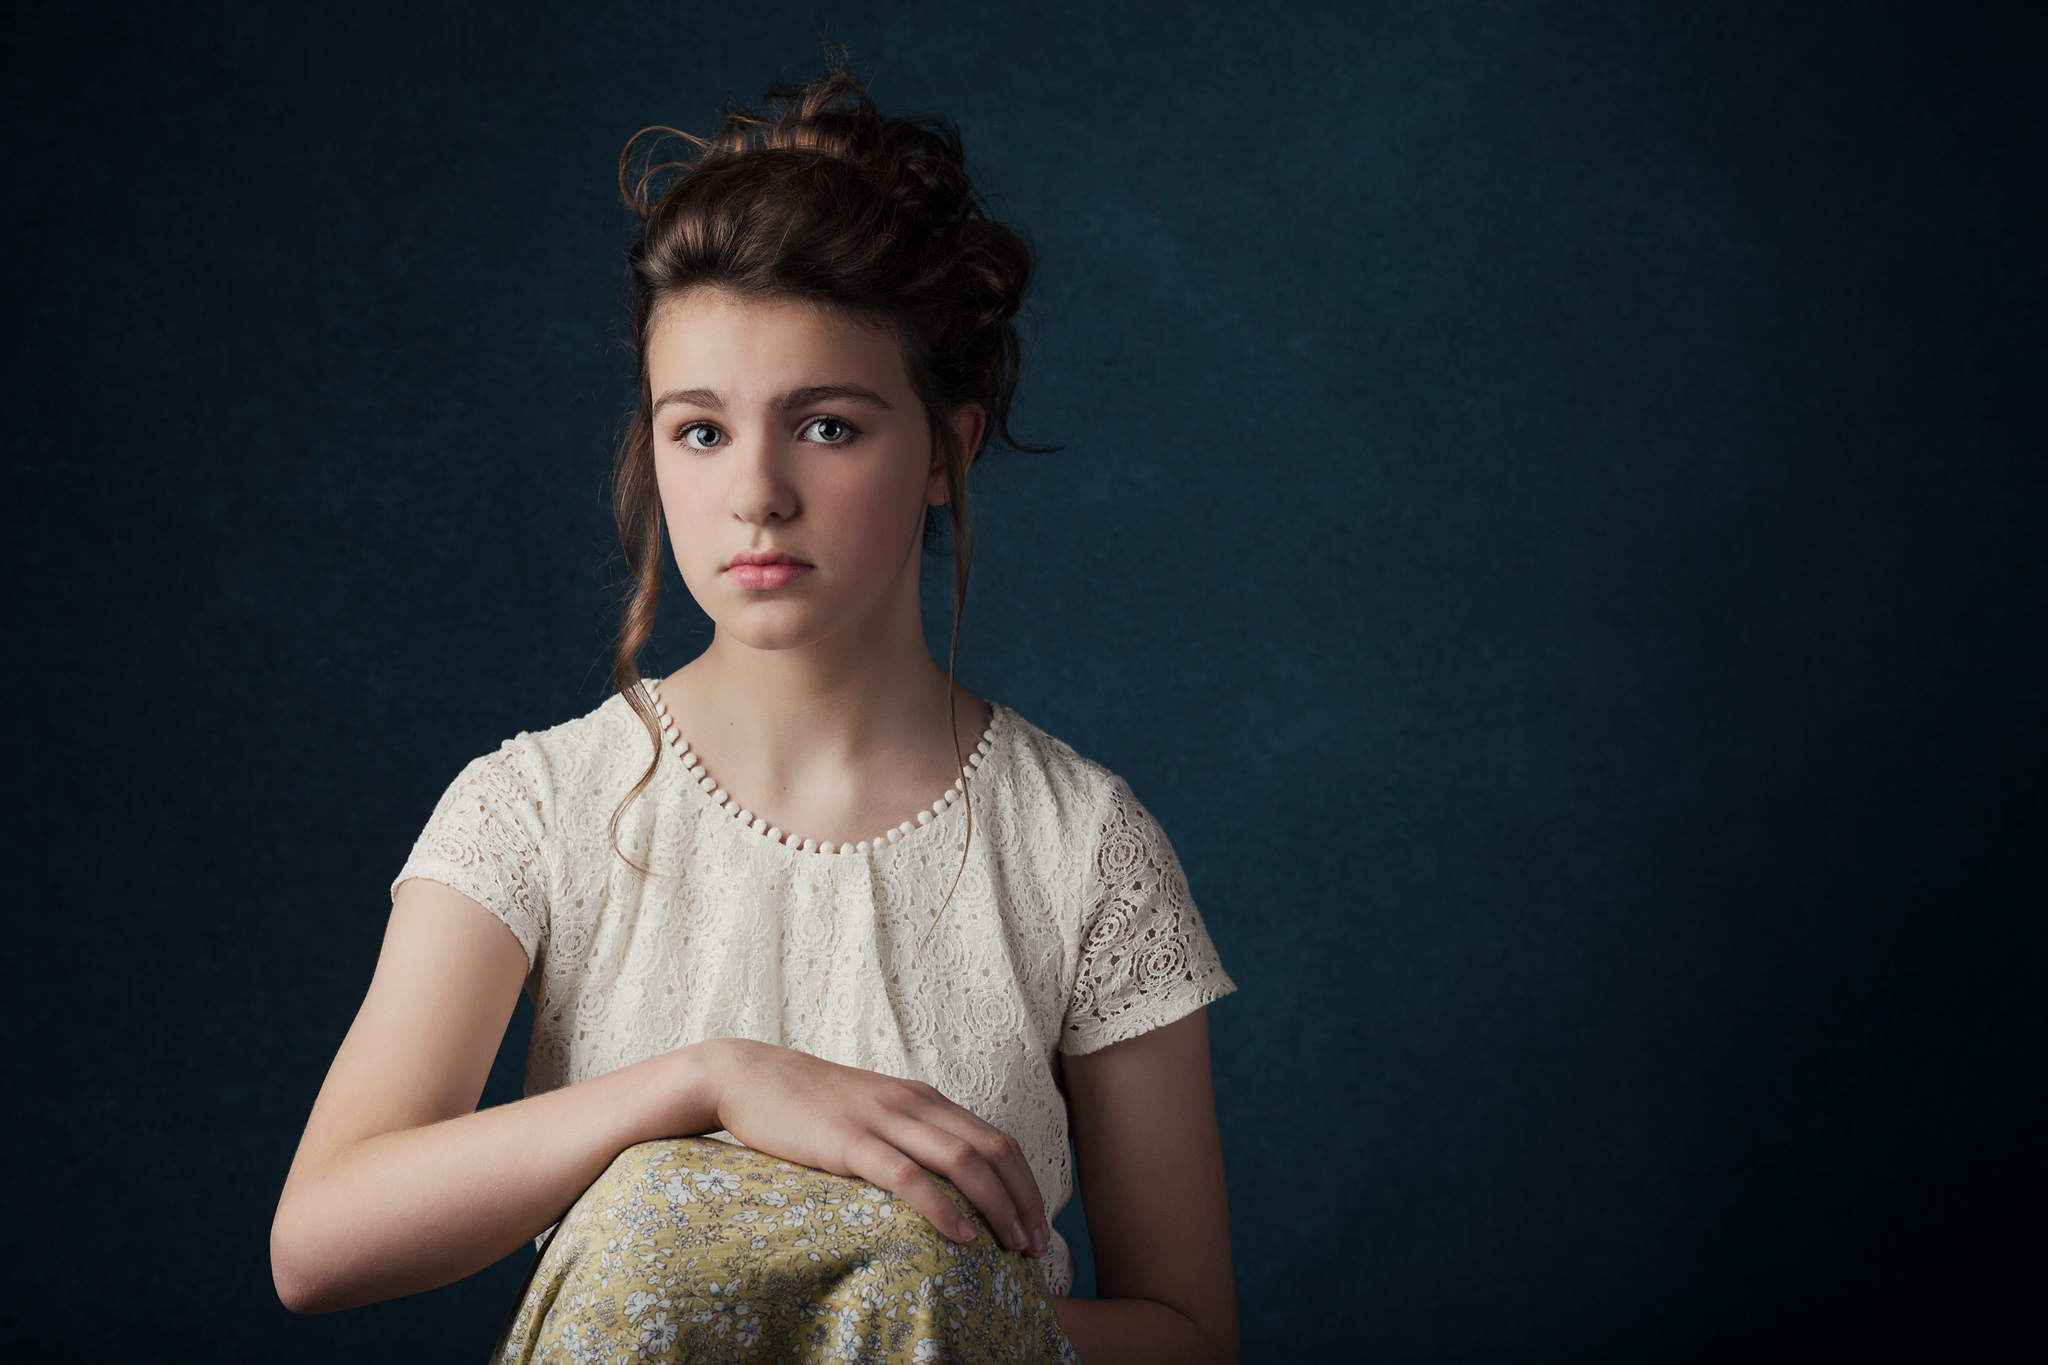 Portraiture photography for children and families.